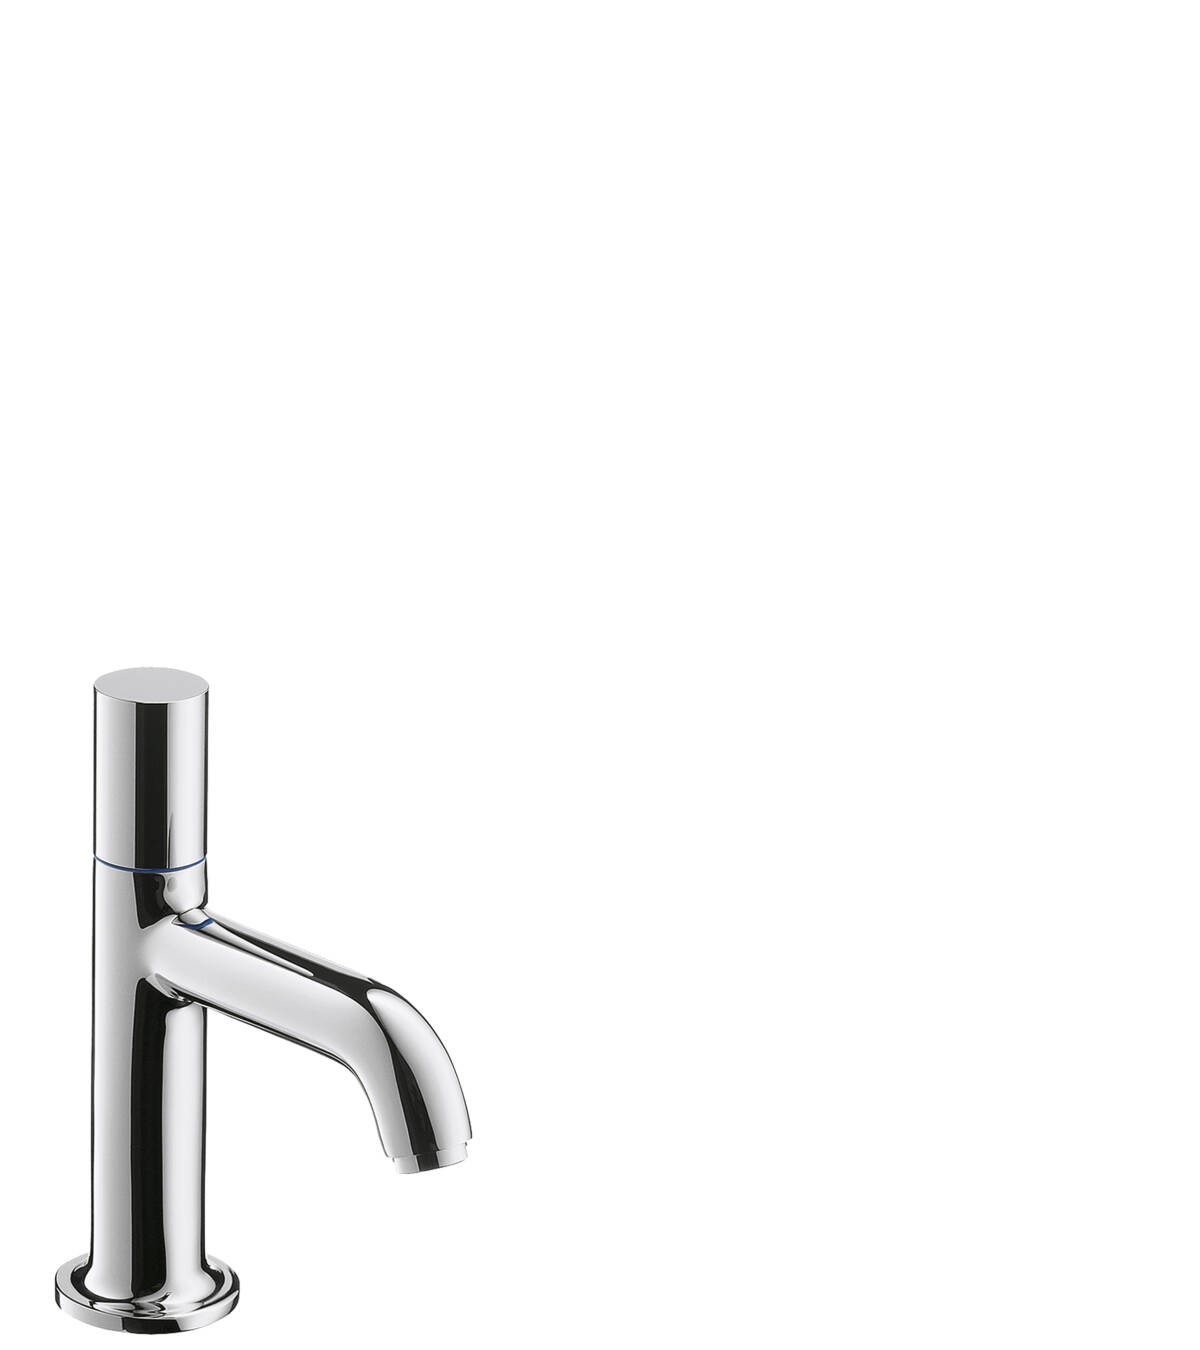 Pillar tap 70 without waste set, Chrome, 38130000